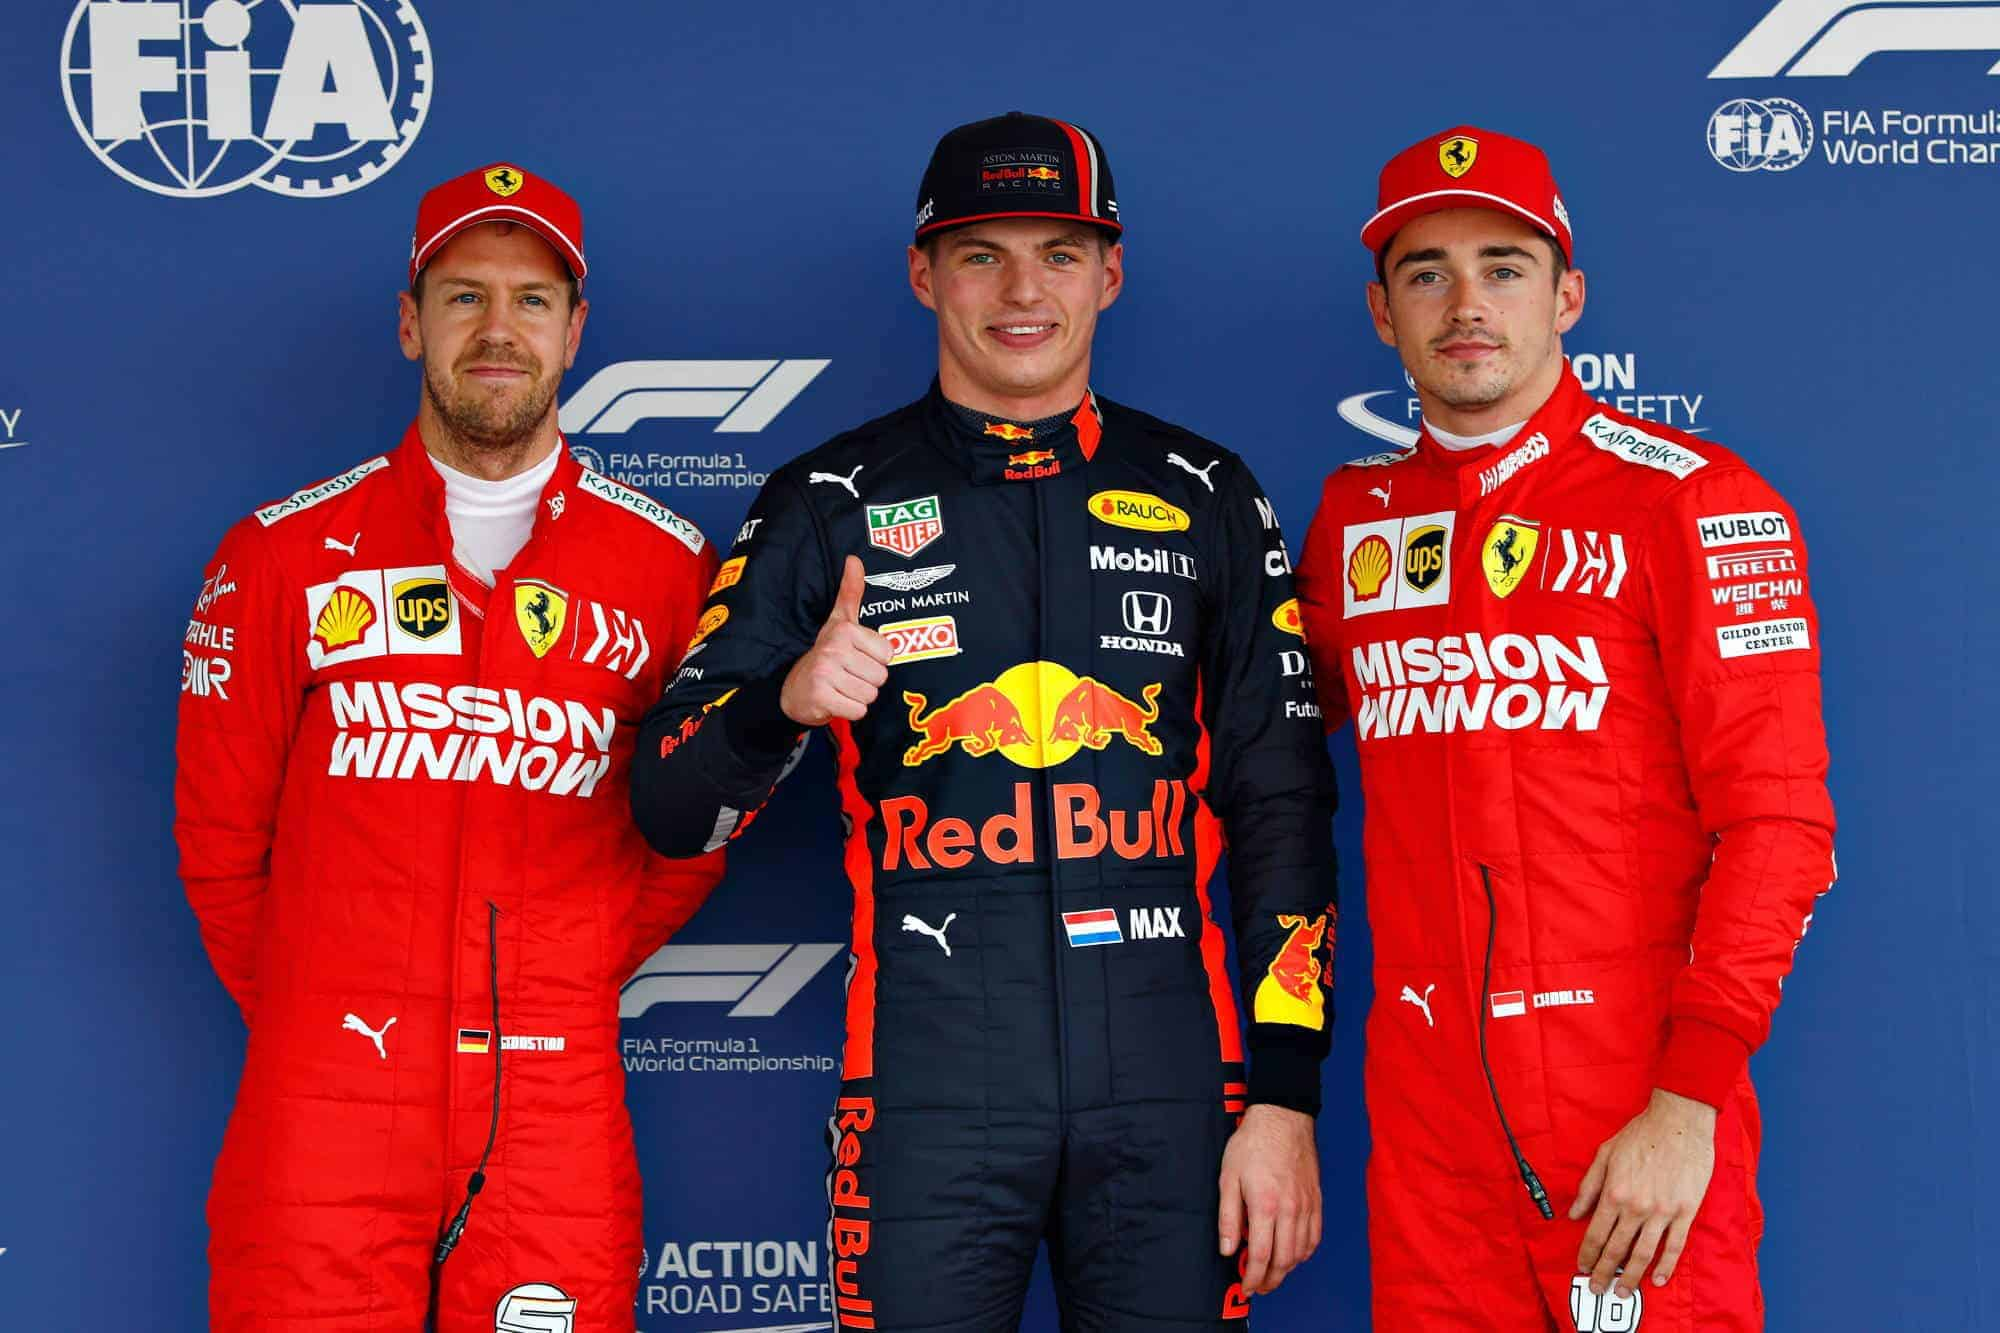 Verstappen Red Bull Leclerc Vettel Mexican GP F1 2019 post qualifying top three Photo Red Bull